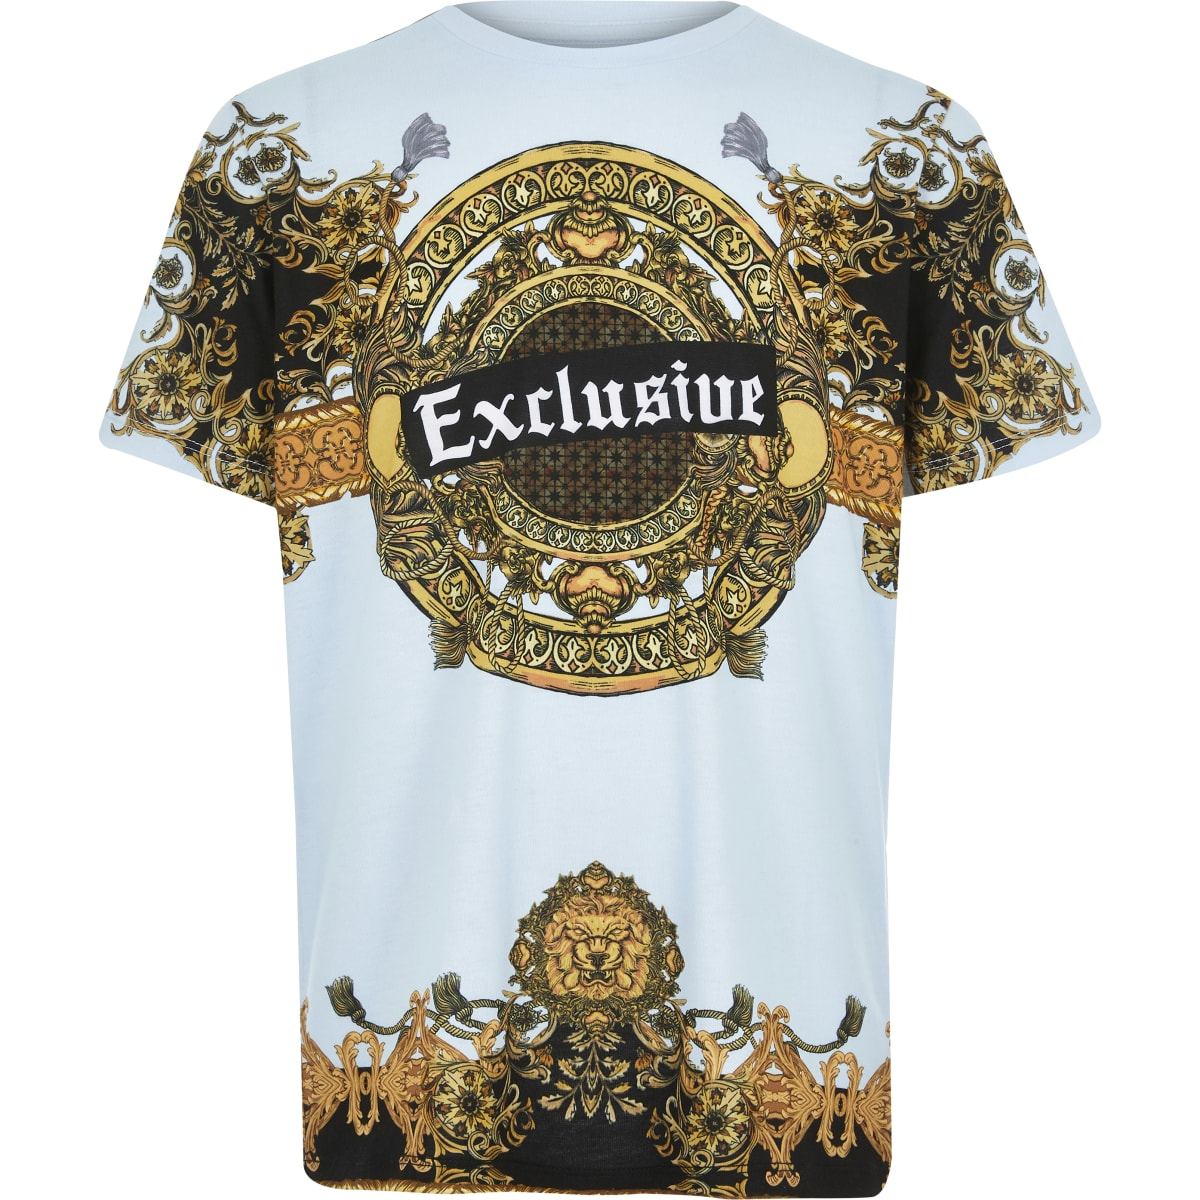 Boys blue 'exclusive' baroque print T-shirt